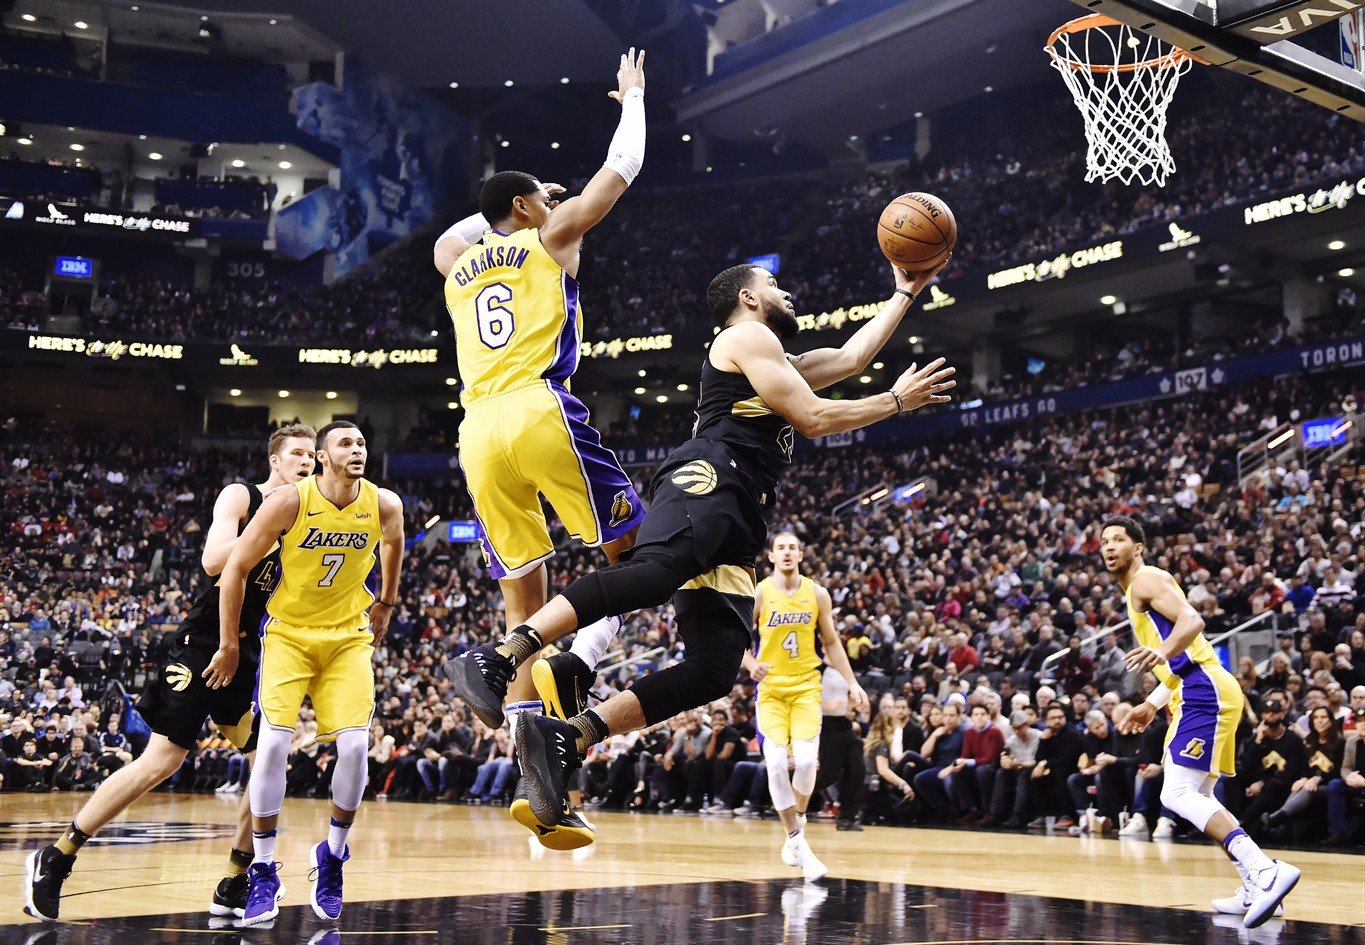 FRED VANVLEET SCORED A CAREER-25 POINTS IN THE RAPTORS 123-111 VICTORY OVER THE VISITING L.A. LAKERS.